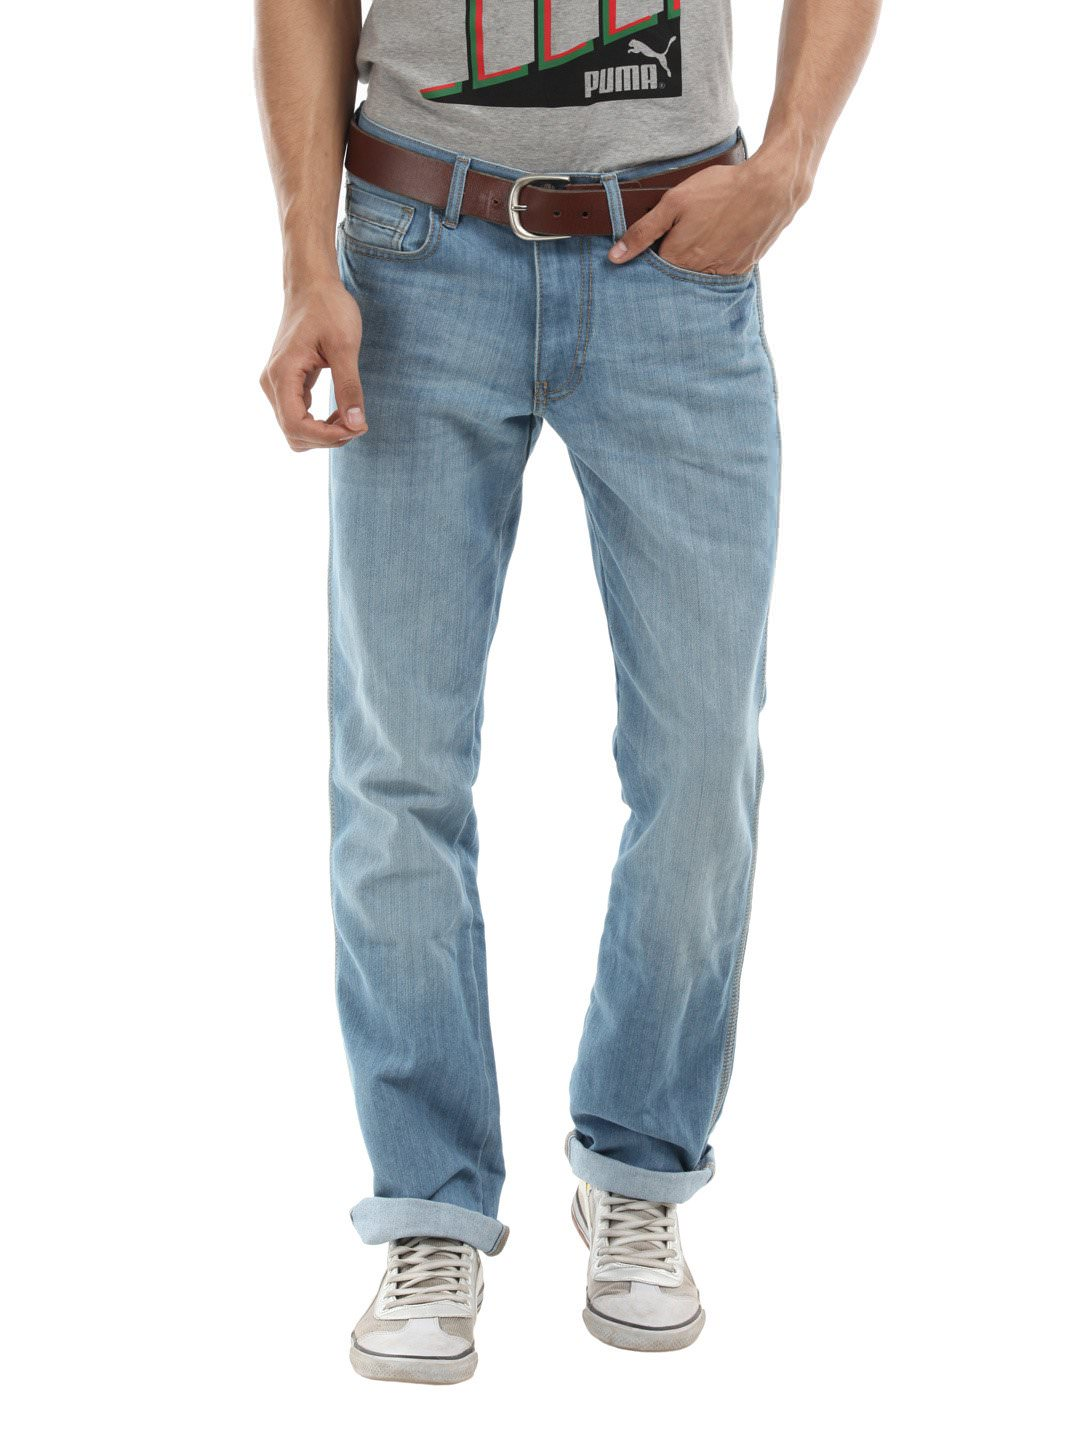 Mens Light Blue Jeans